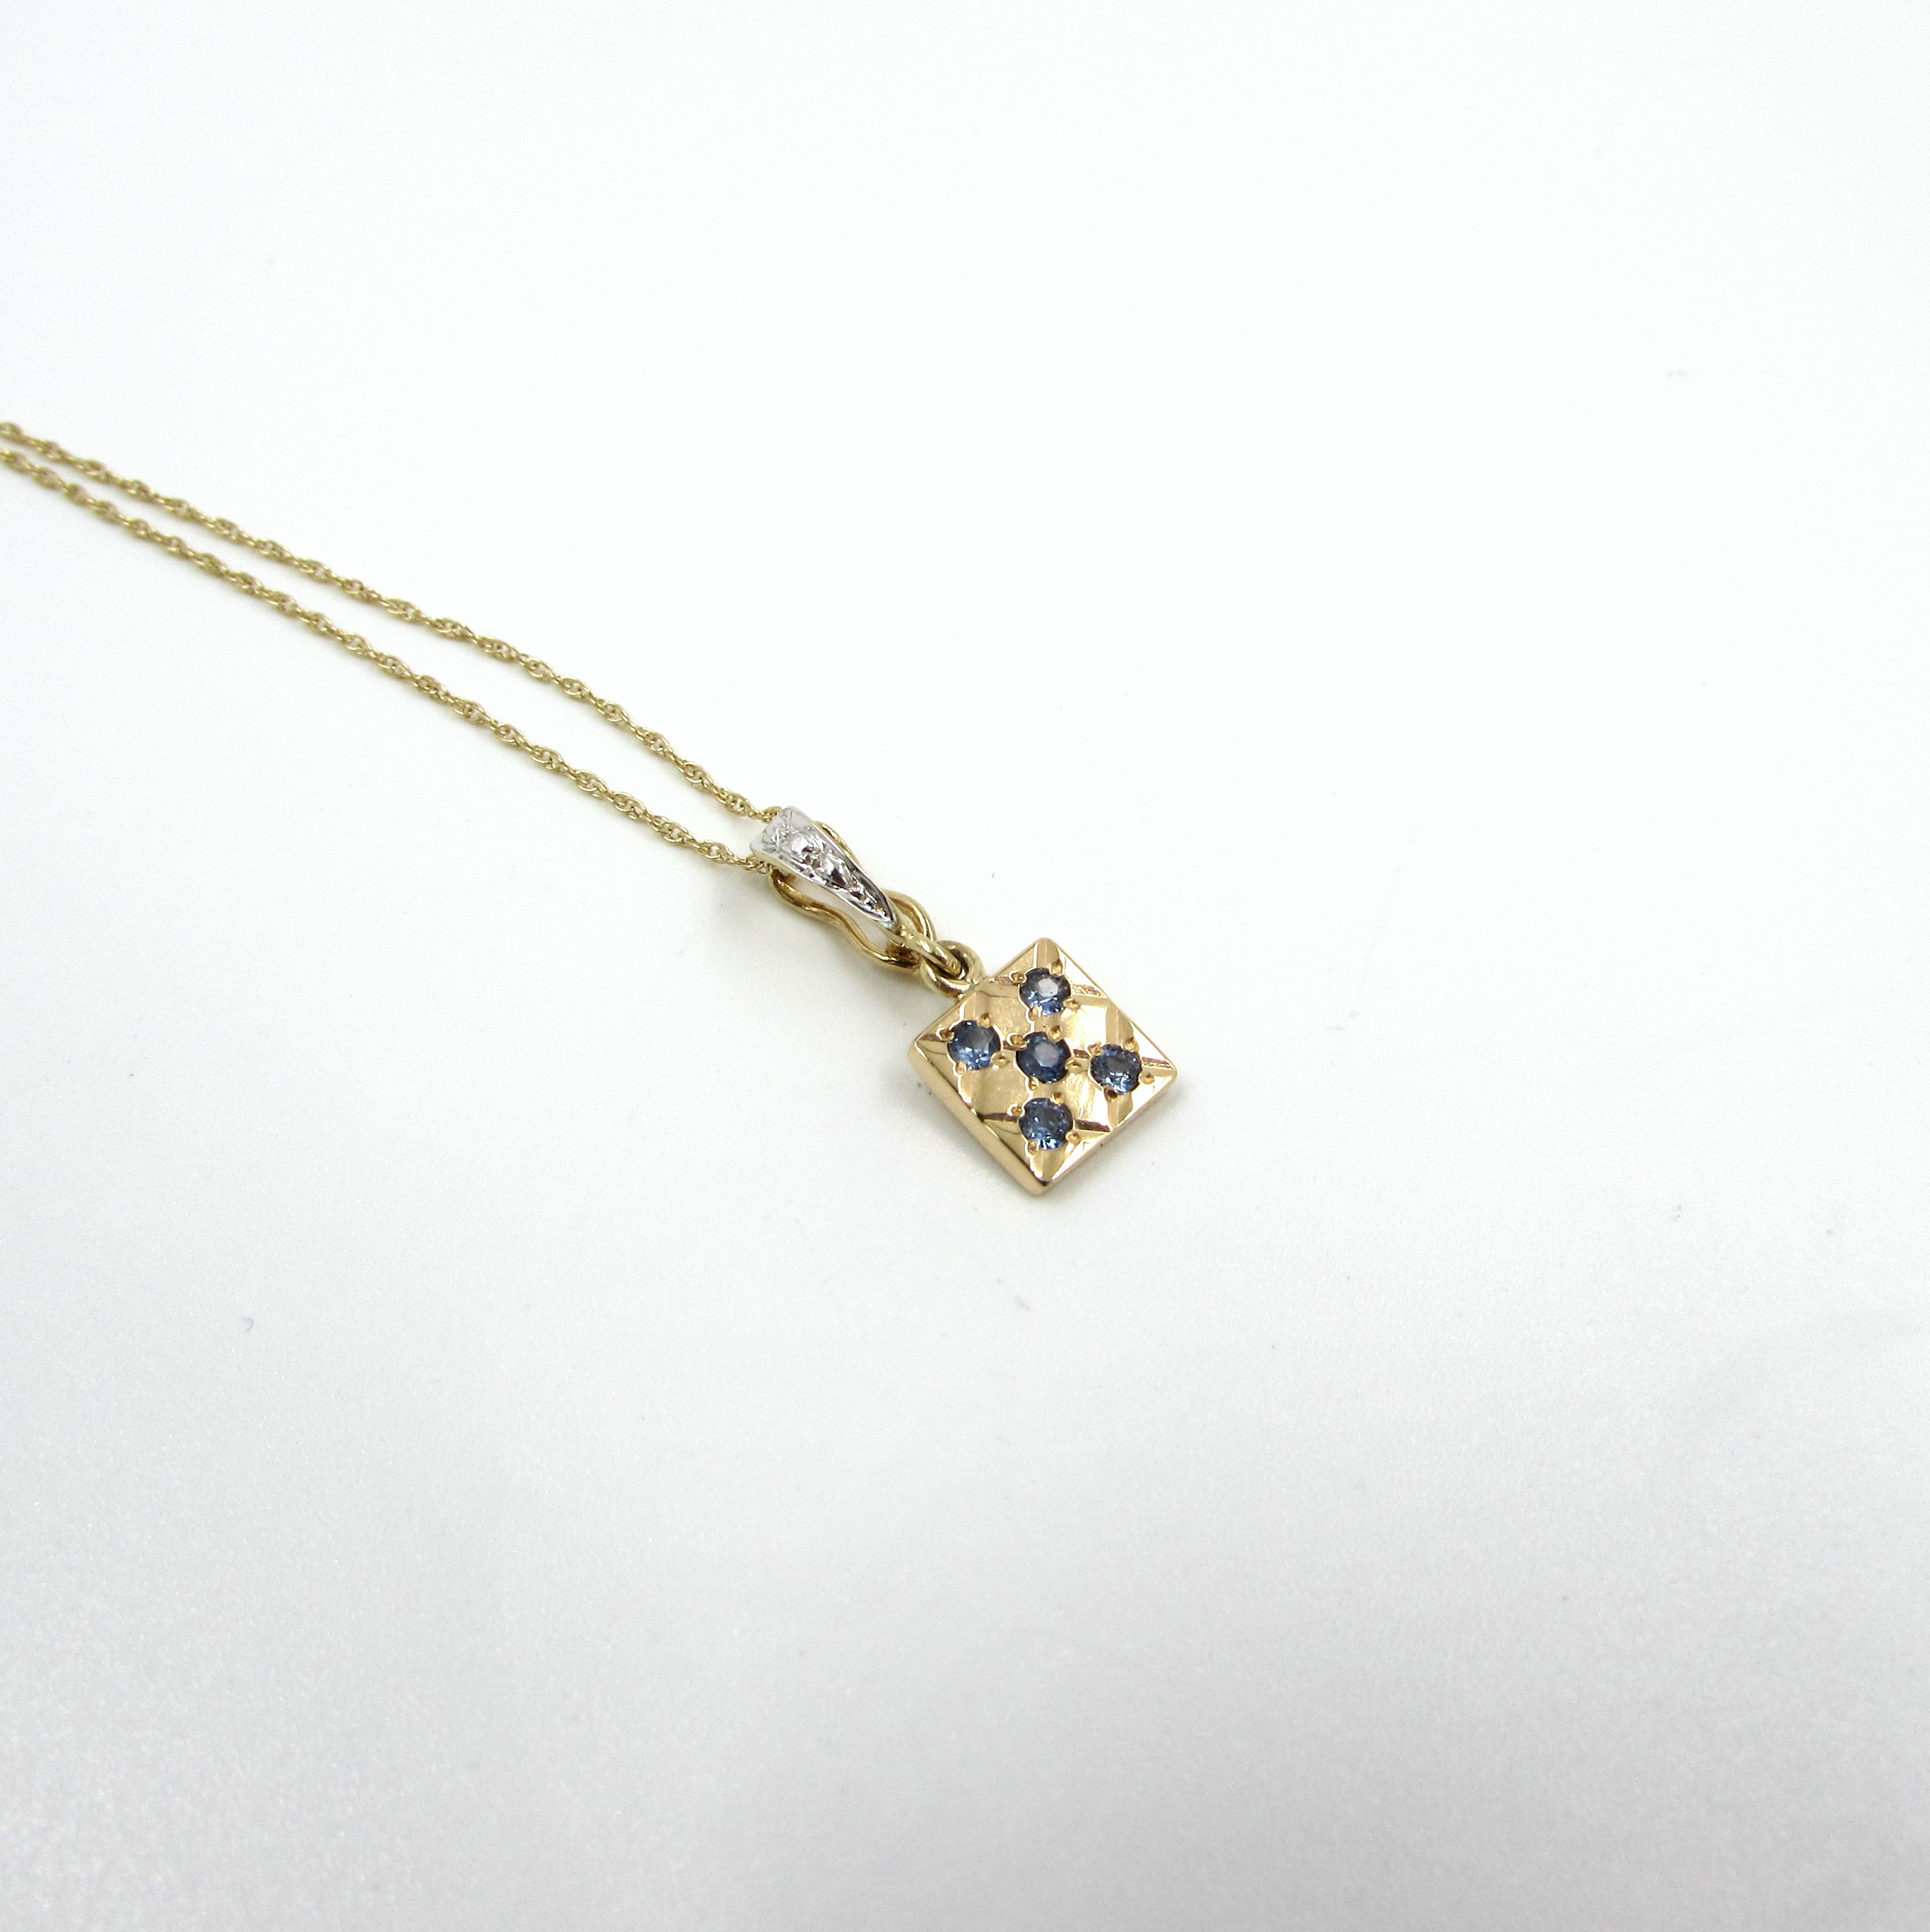 14kt yellow gold chain necklace with sapphire pendant s k ltd aloadofball Choice Image